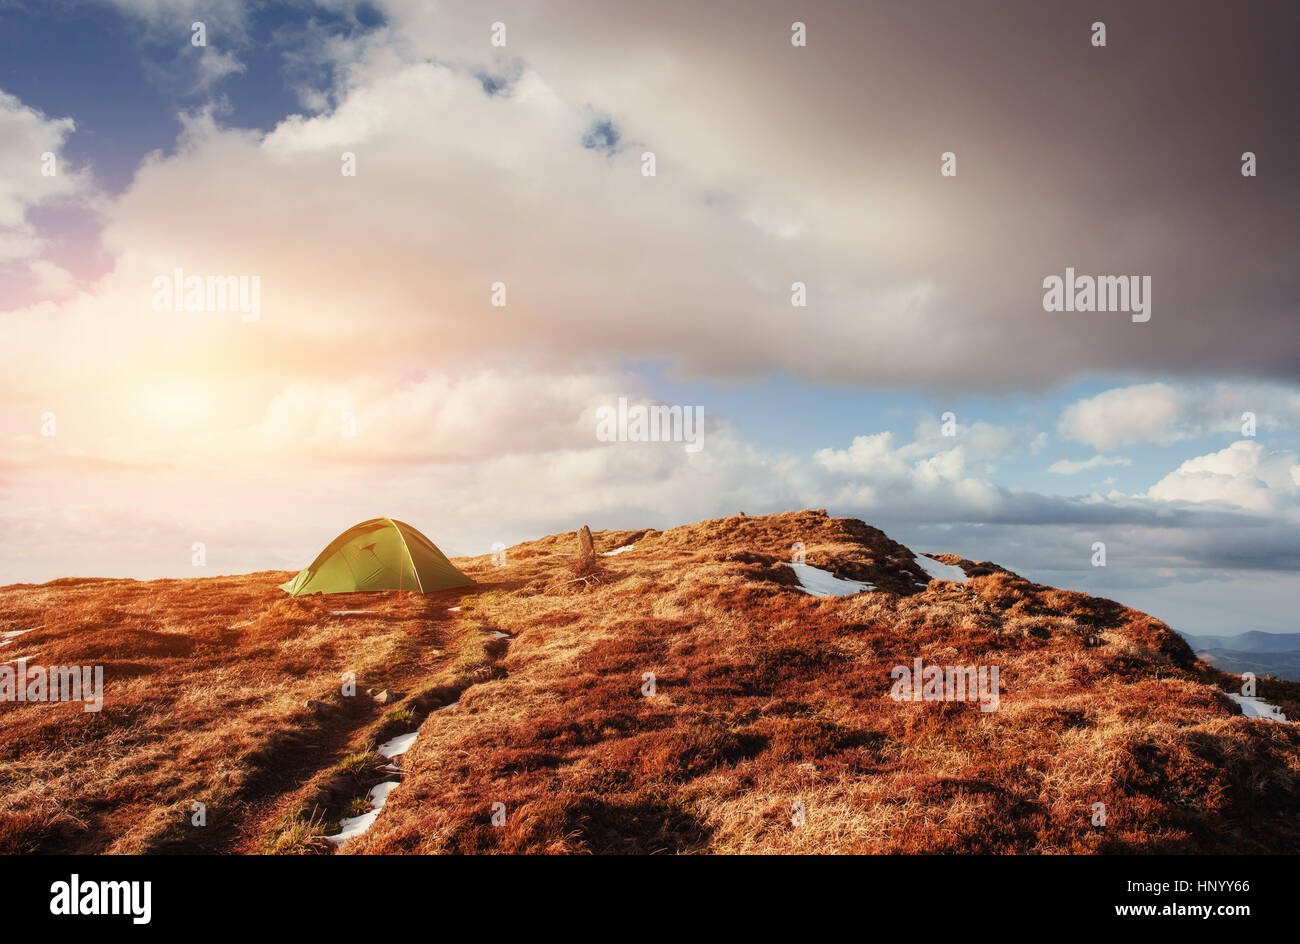 Tourist tent in the mountains in spring. - Stock Image